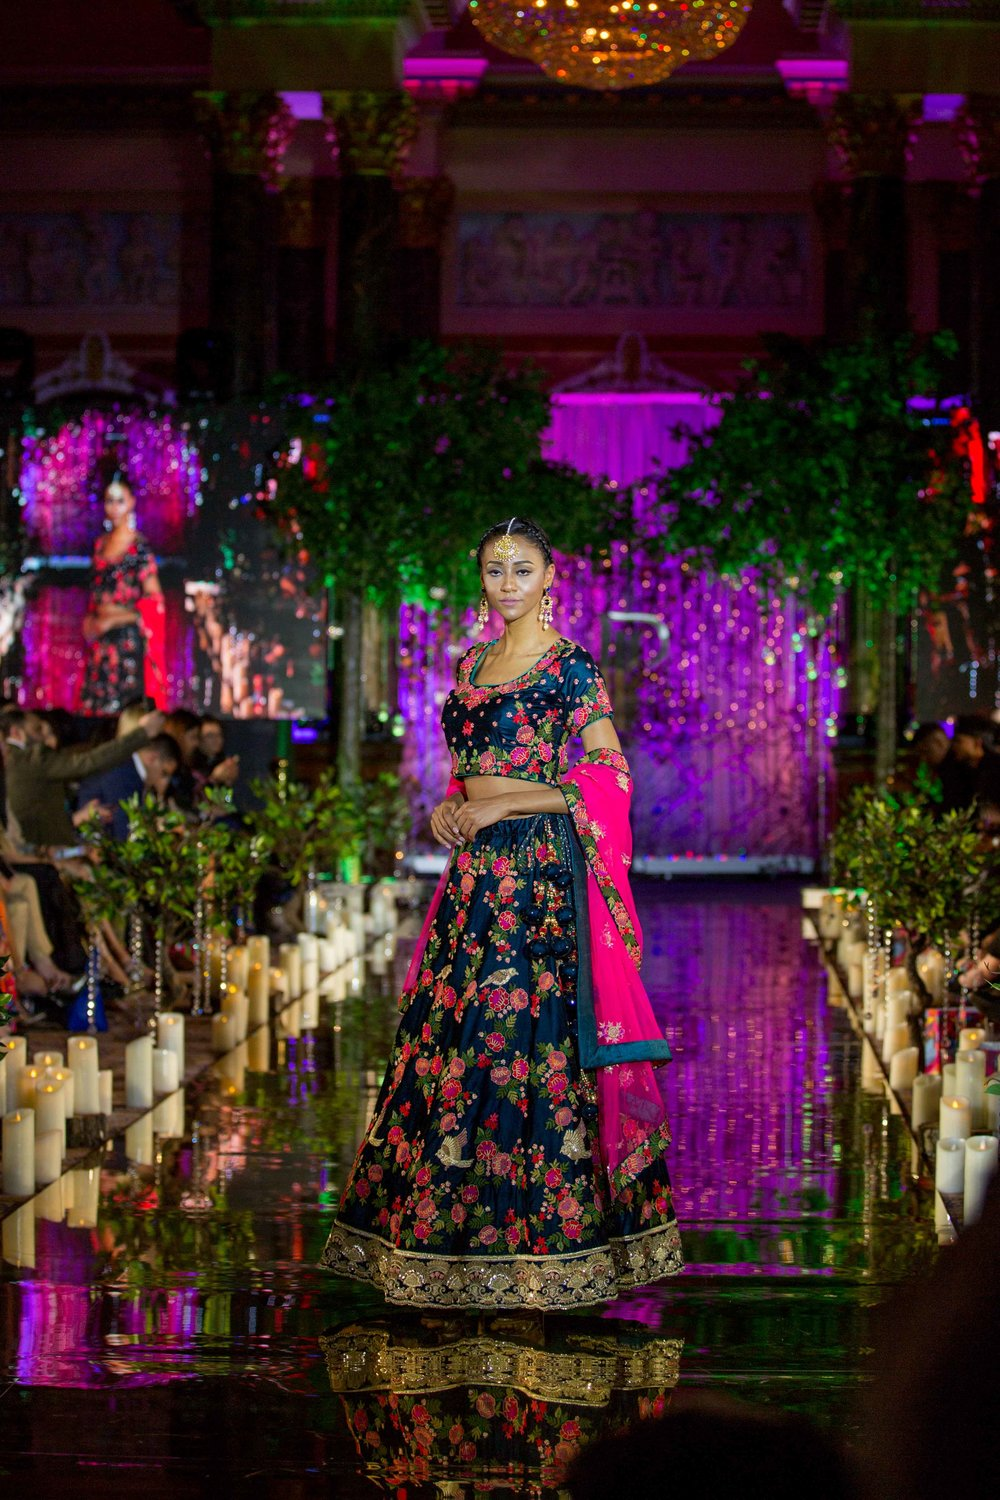 IPLF-IPL-Indian-Pakistani-London-Fashion-London-Week-catwalk-photographer-natalia-smith-photography-nomi-ansari-28.jpg